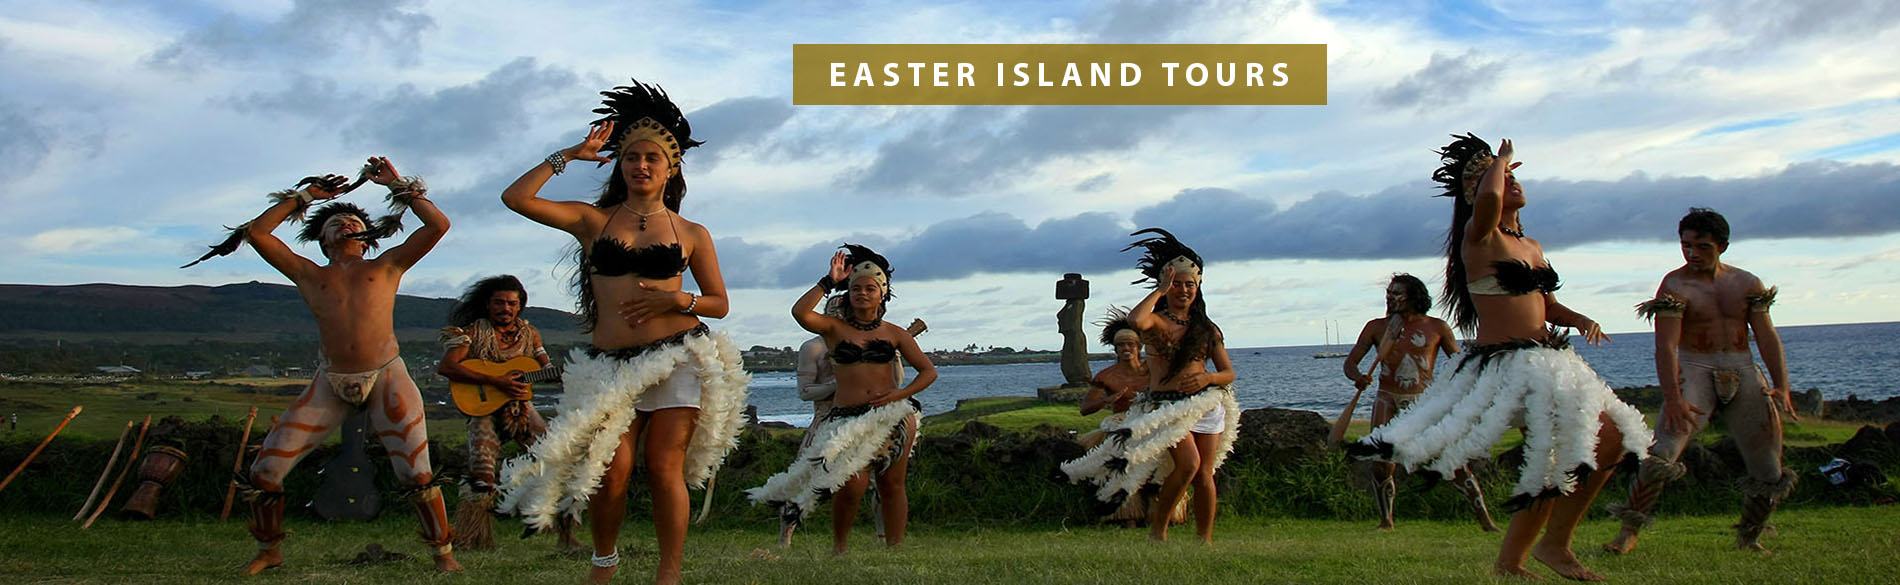 Day Tours Easter Island